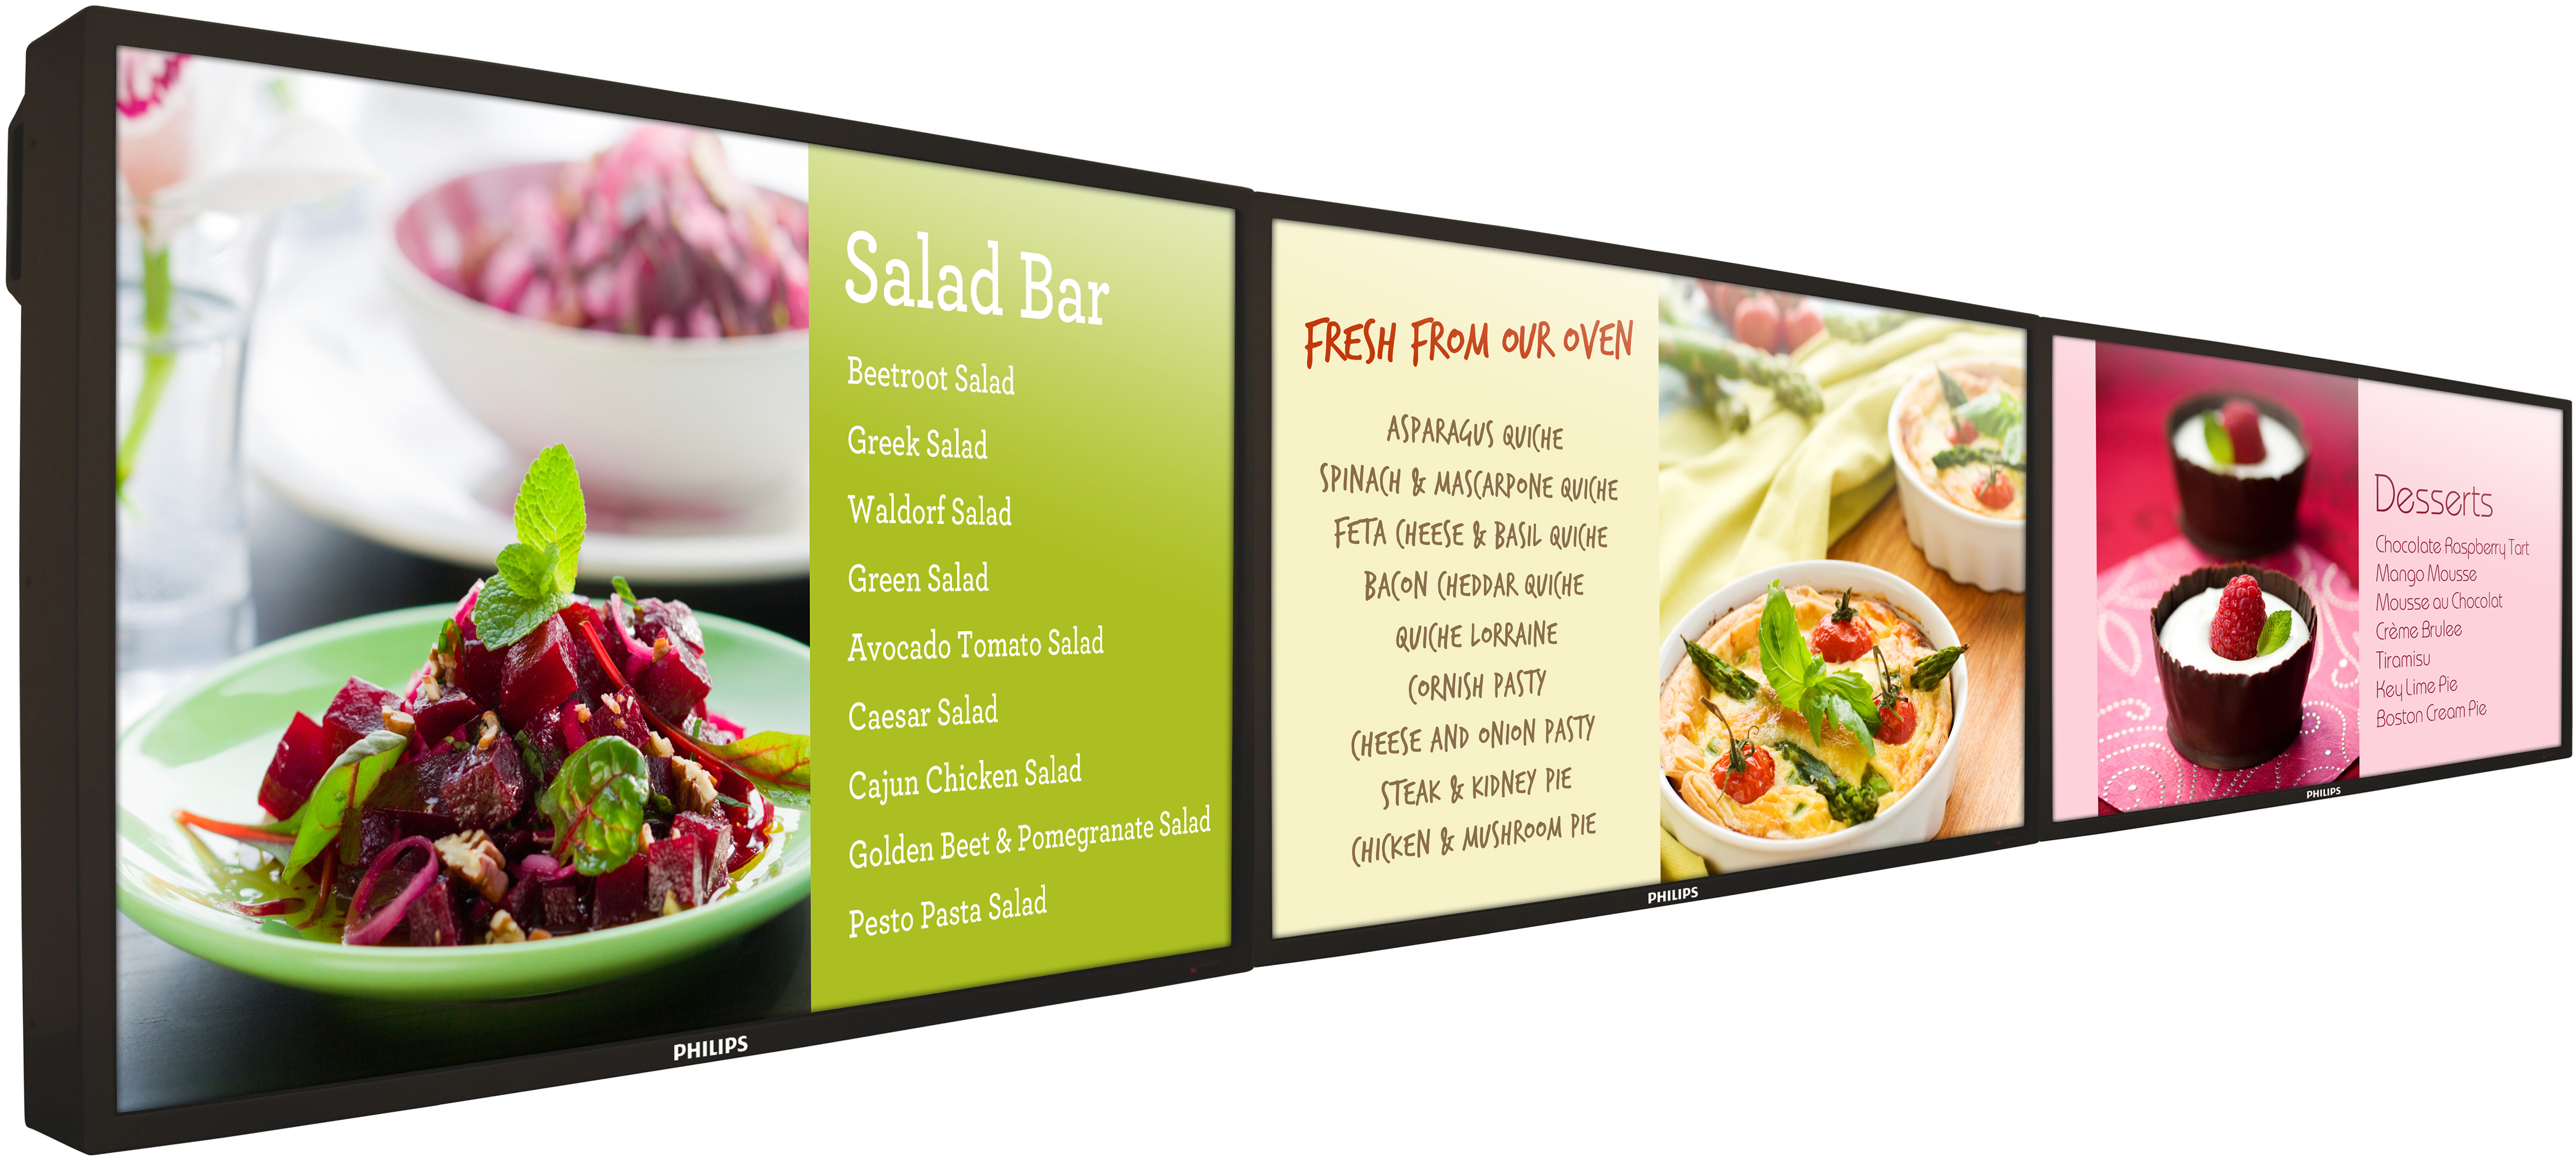 Philips BDL4771V in 3x1 digital menu board configuration